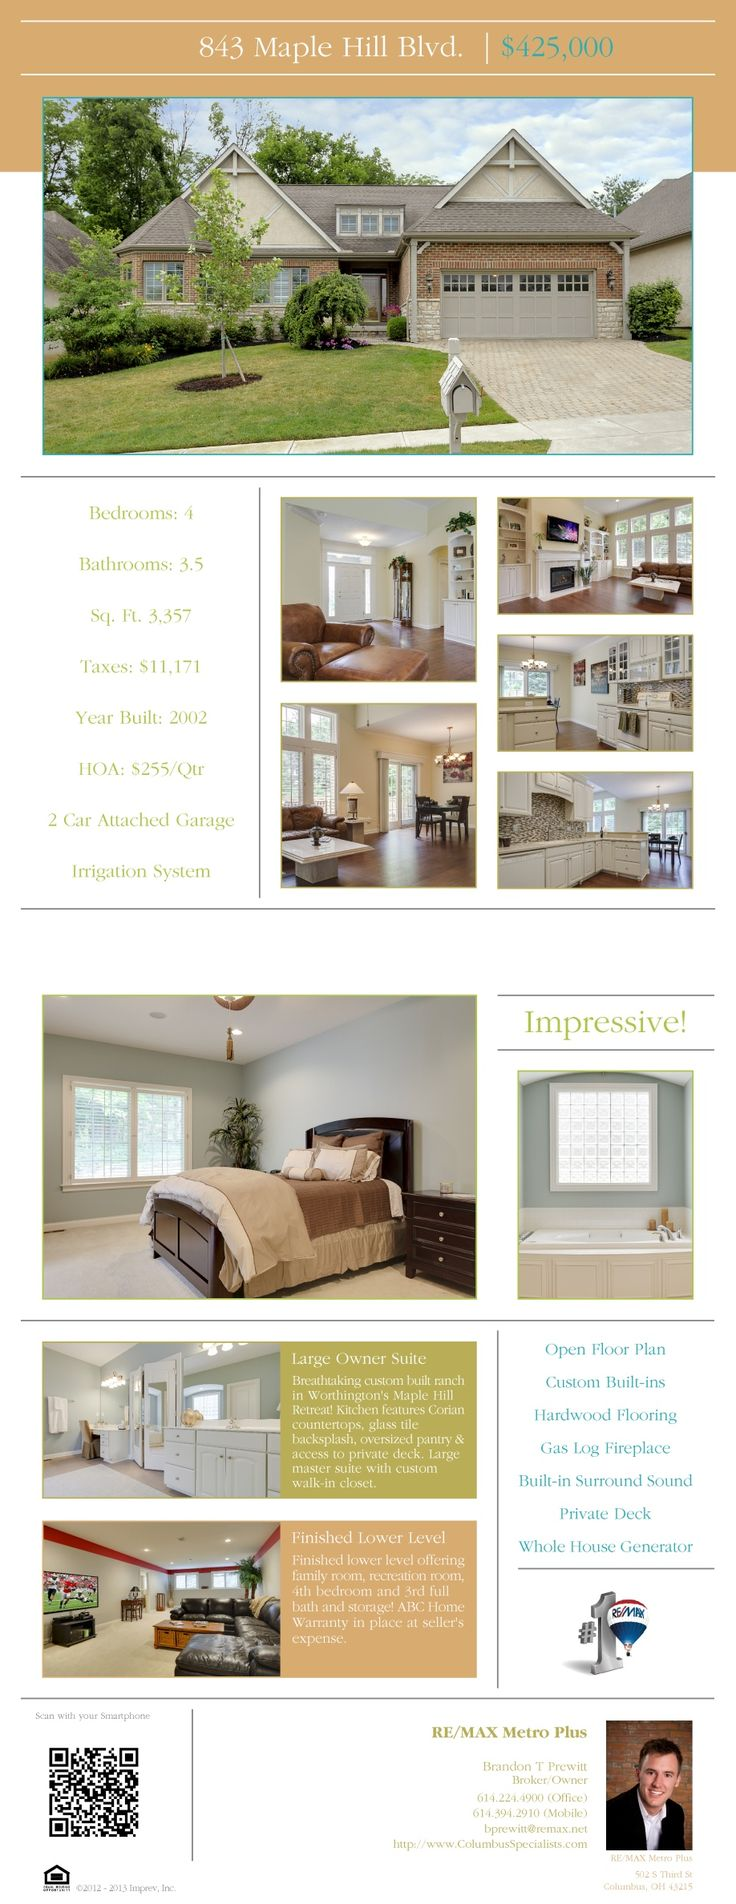 best images about real estate flyers property property flyer for our listing in maple hill retreat